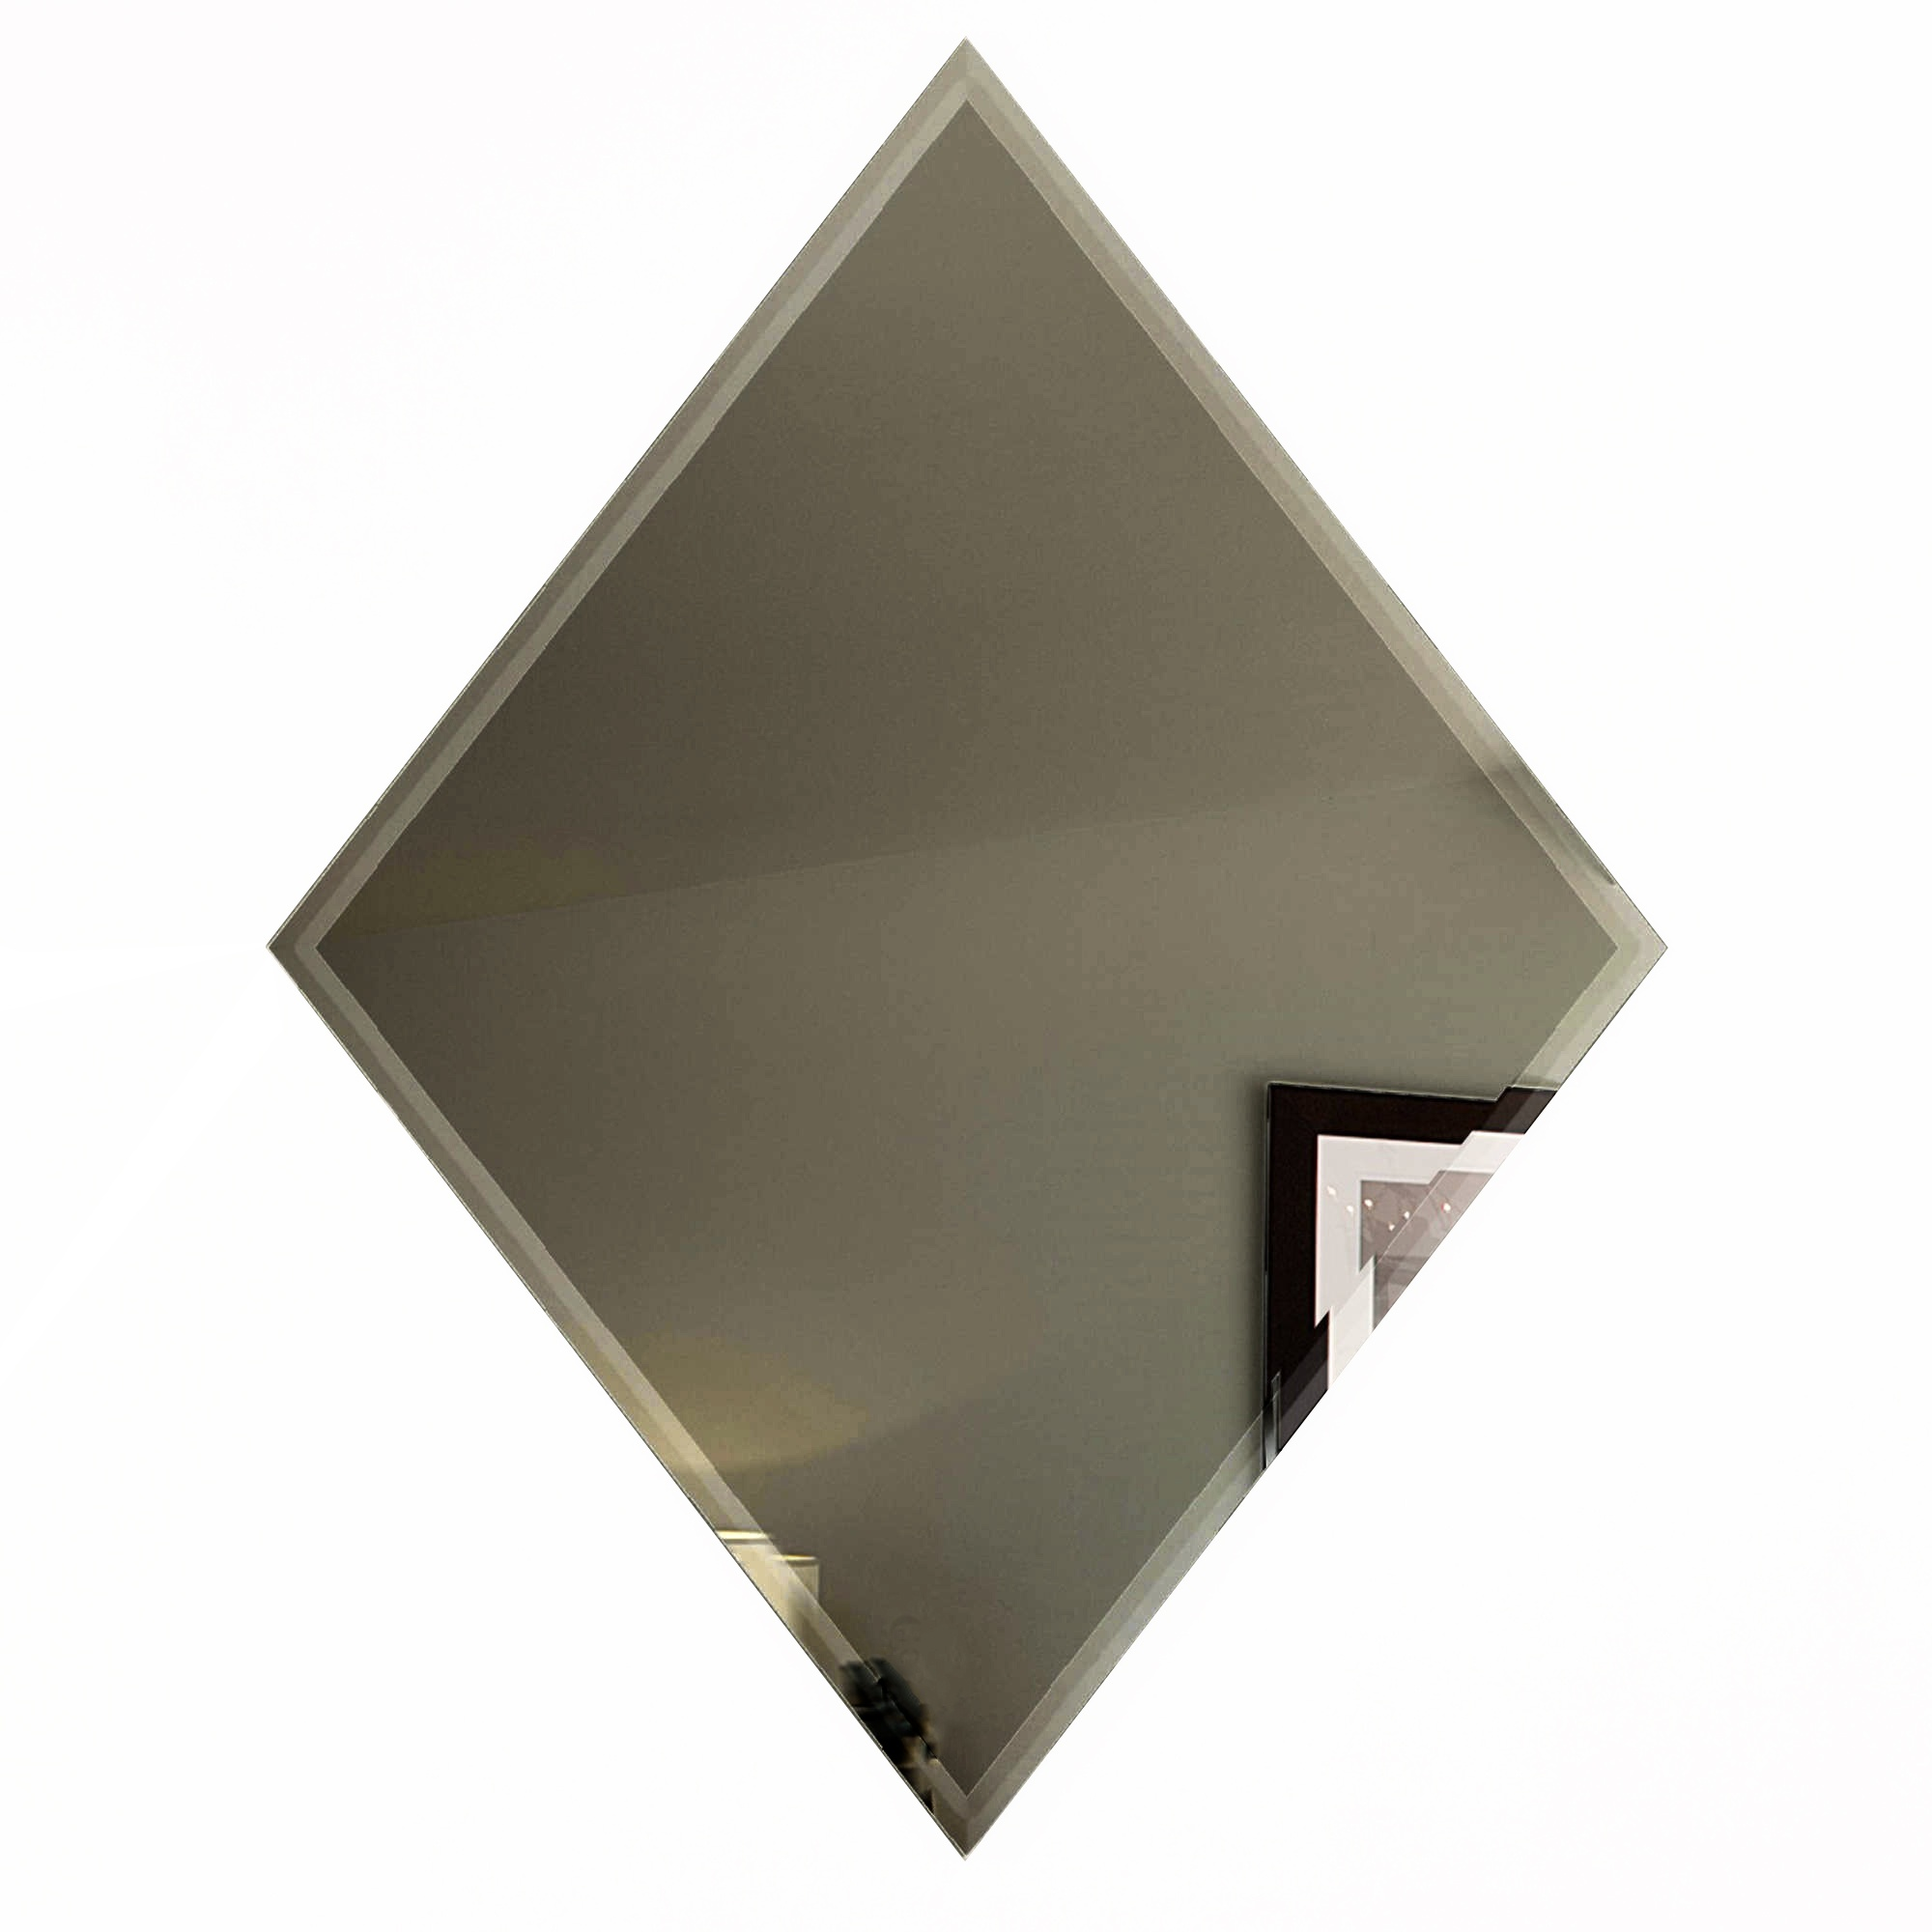 Reflections 6 in x 8 in Mirror Diamond Tile in GOLD Glossy